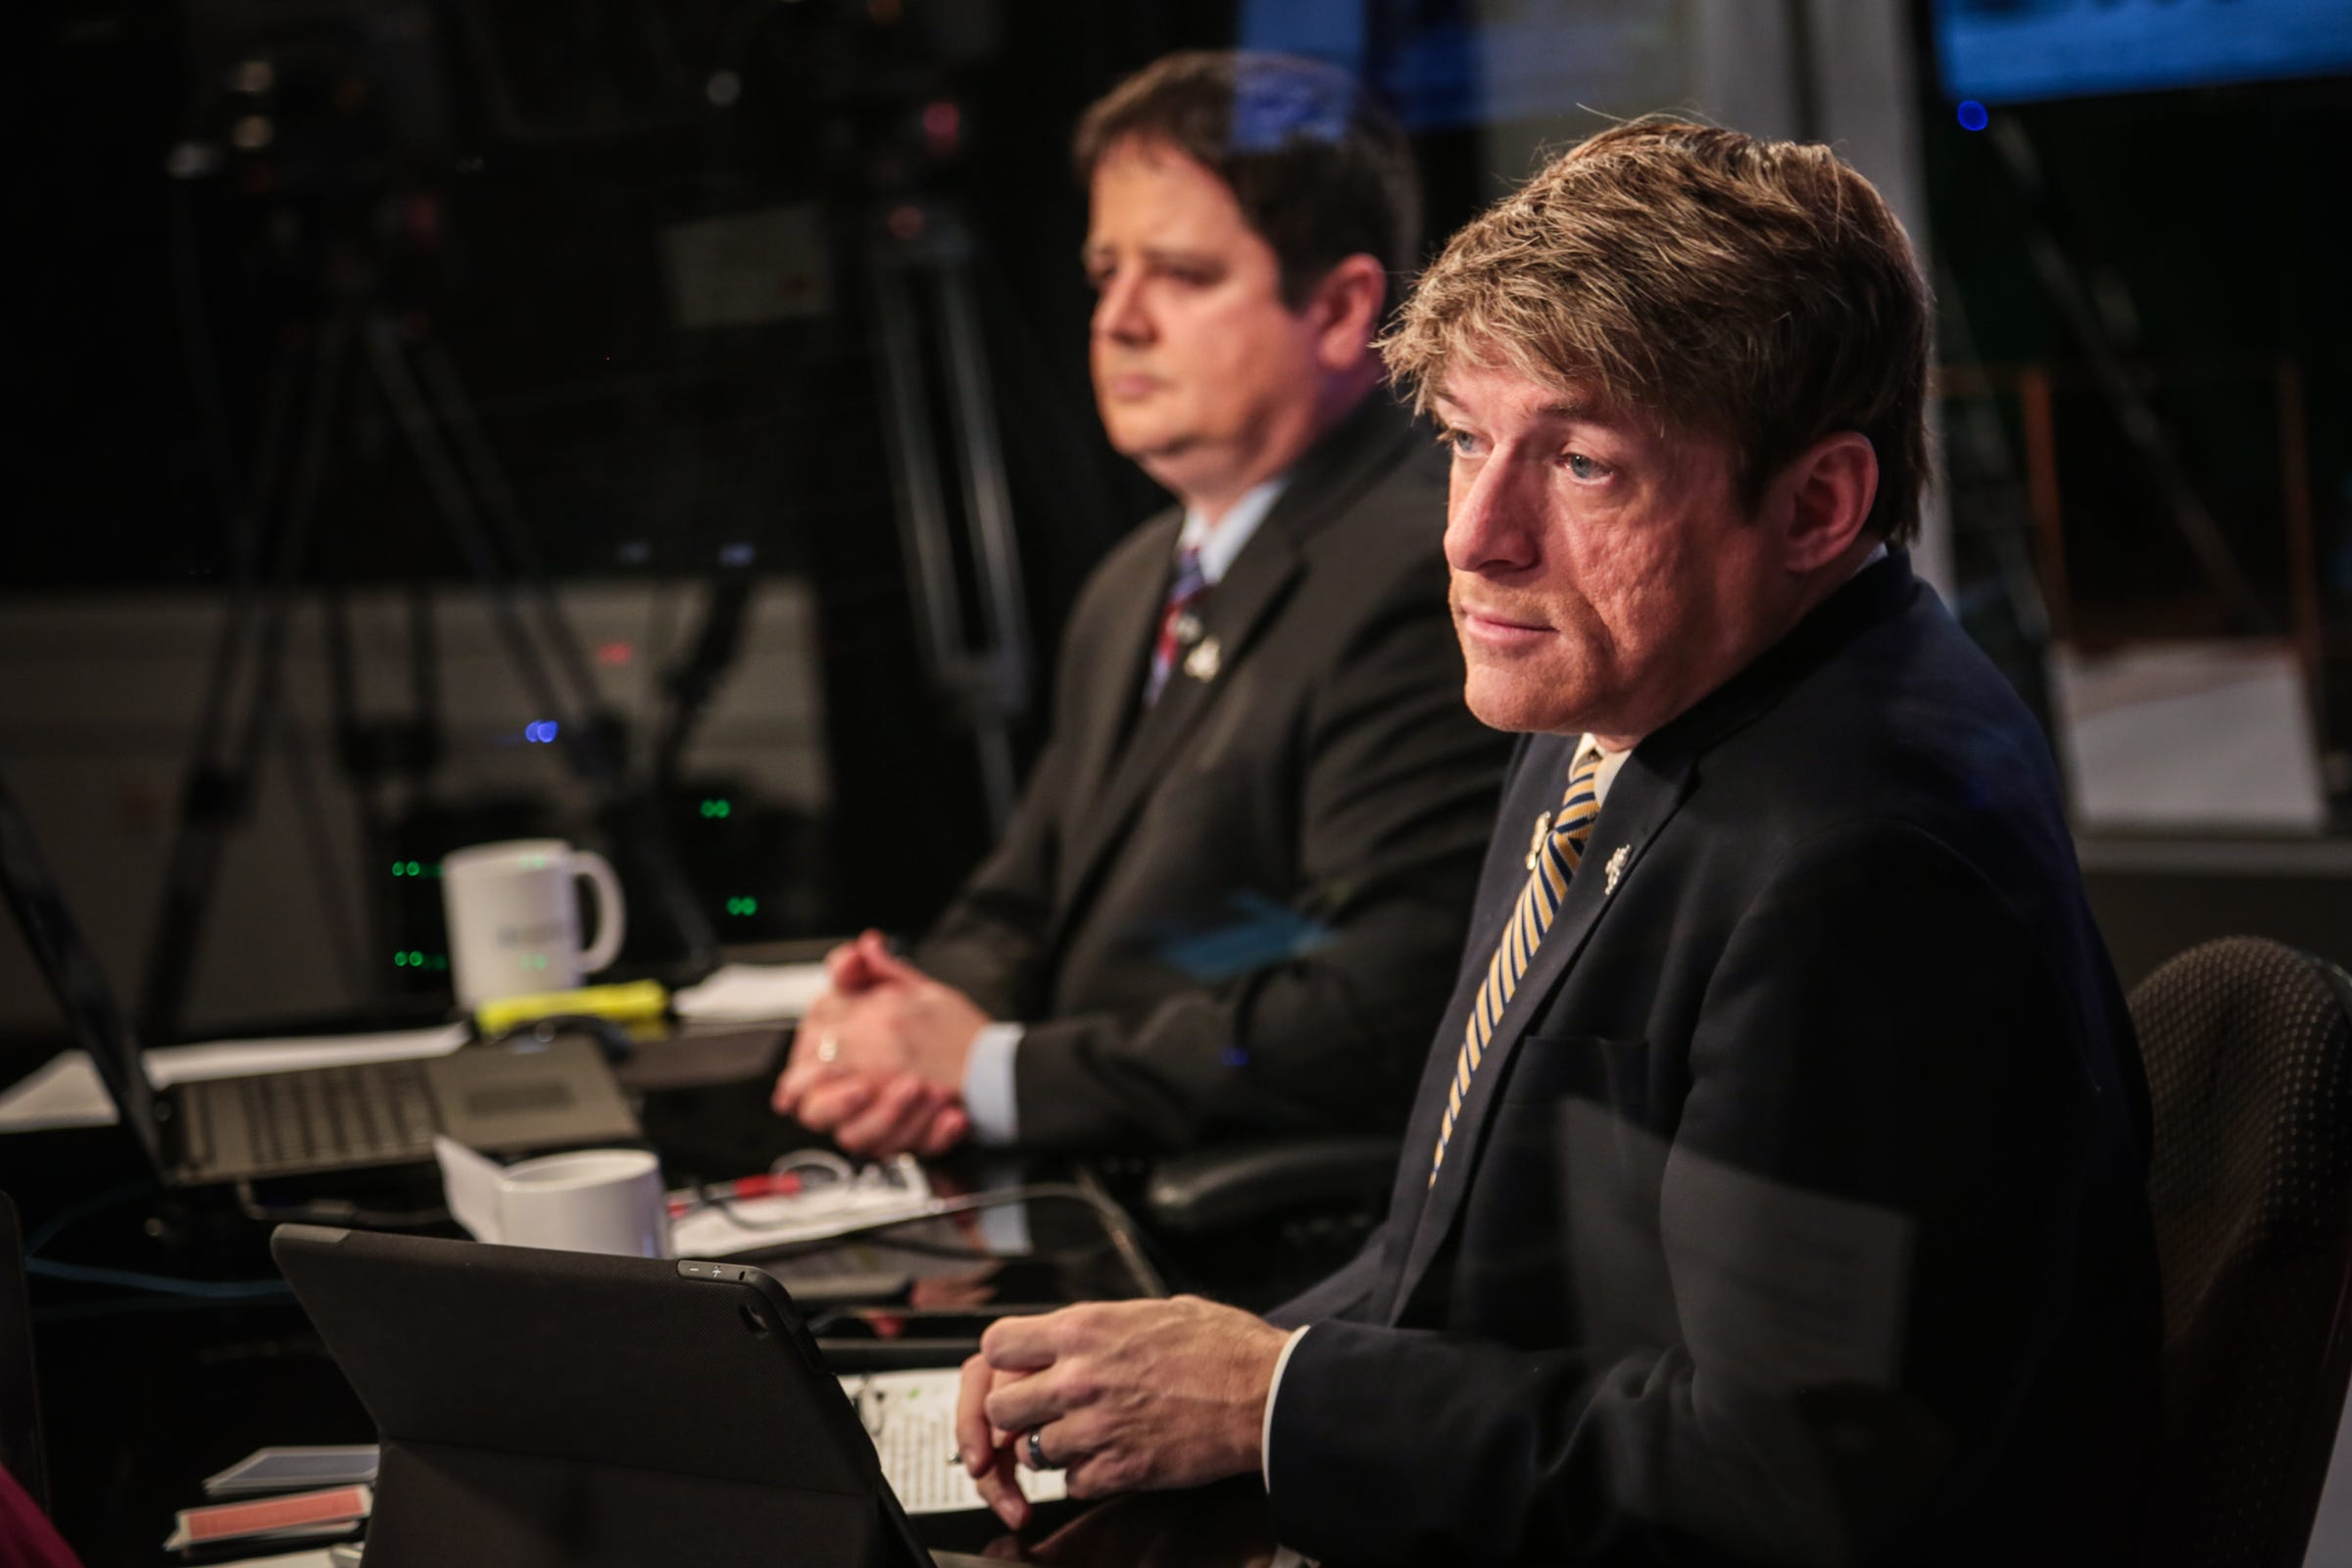 Michael voris homosexuality and christianity